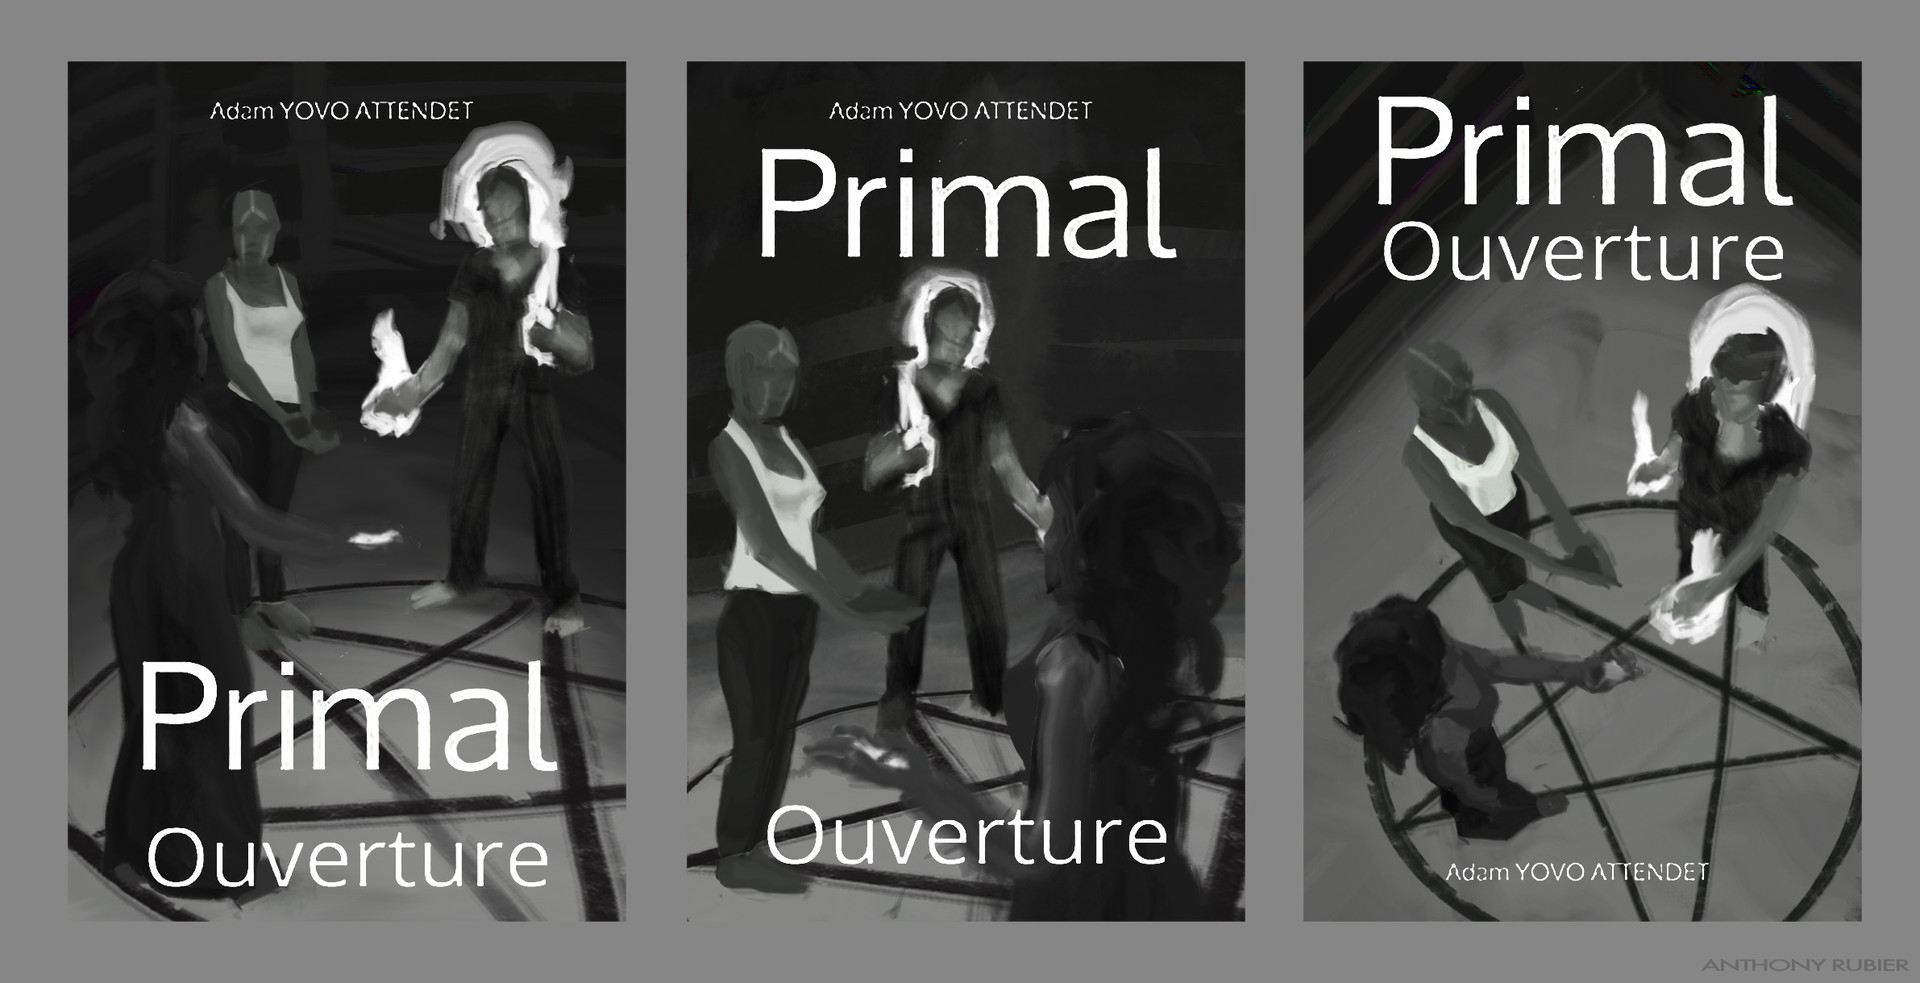 Anthony rubier compos primal ouverture site